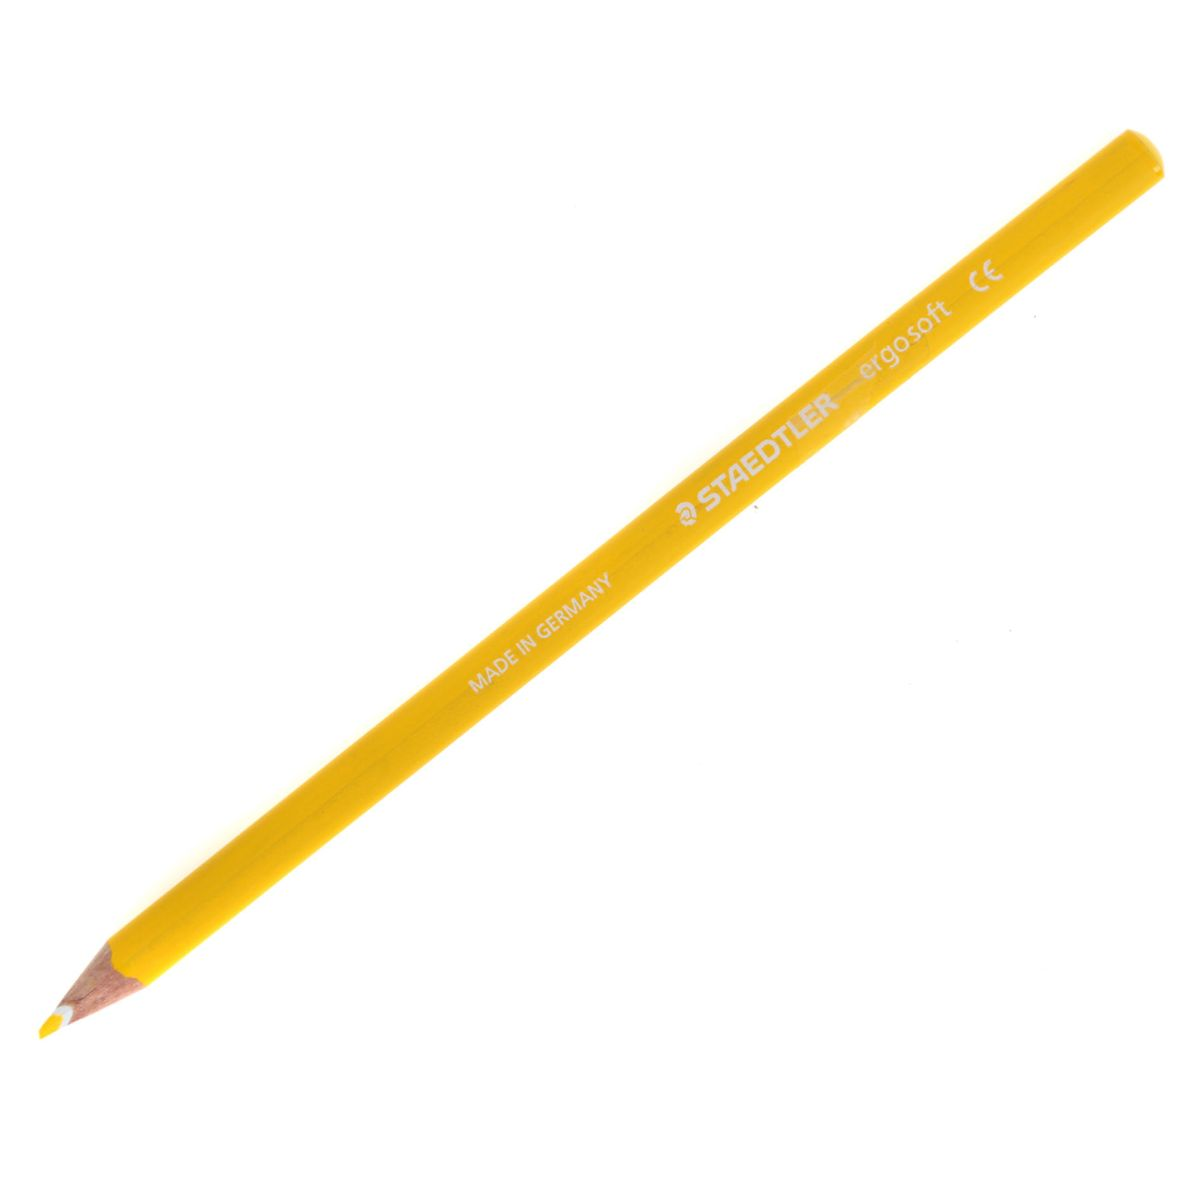 Staedtler Ergosoft Colouring Pencil Loose Yellow, Yellow